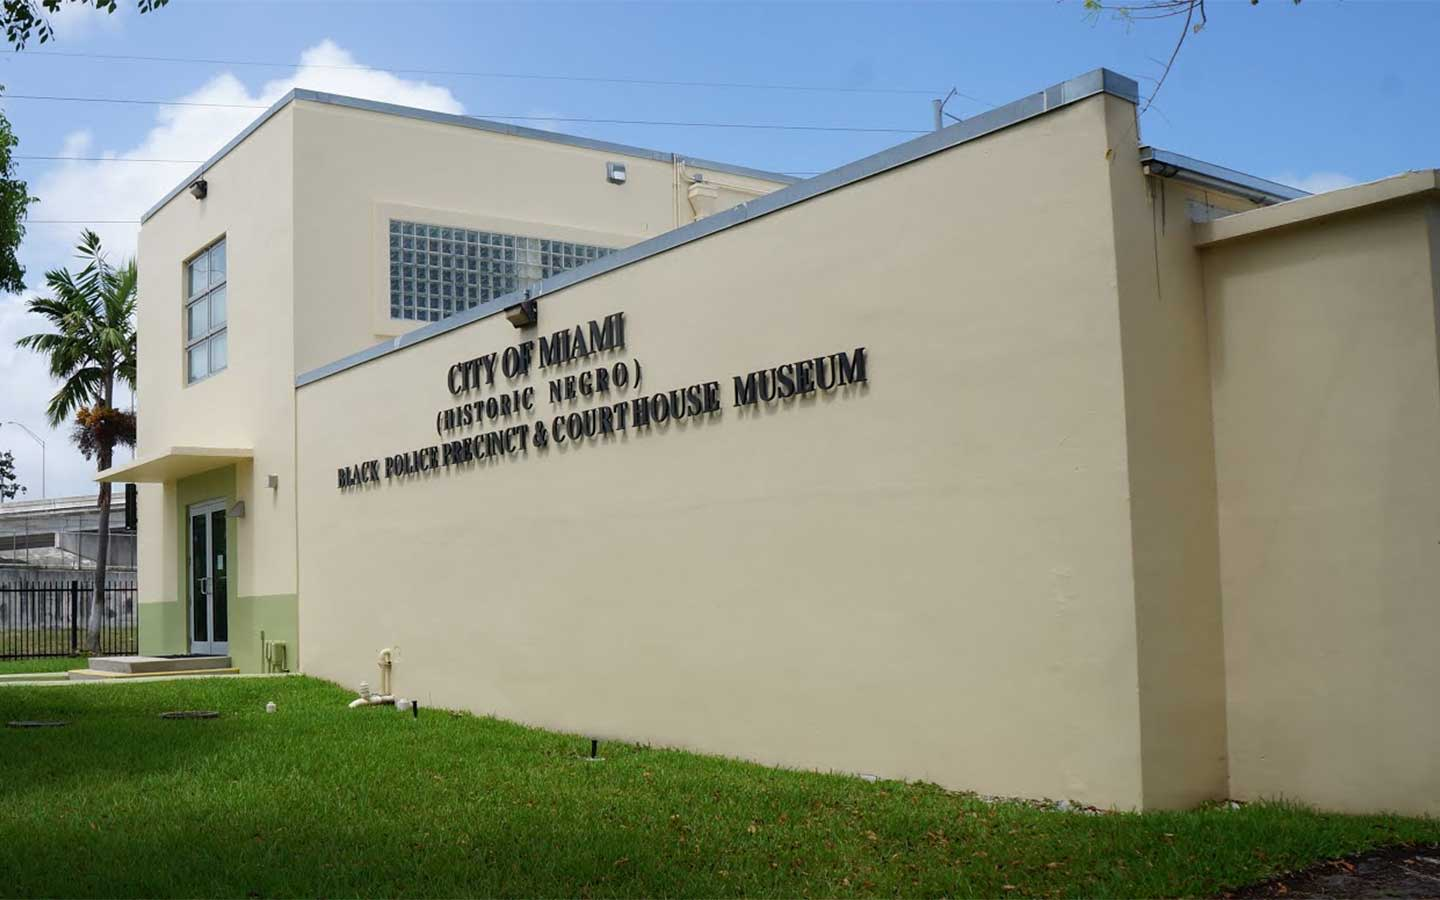 Miami's Black Police Precinct & Courthouse Museum